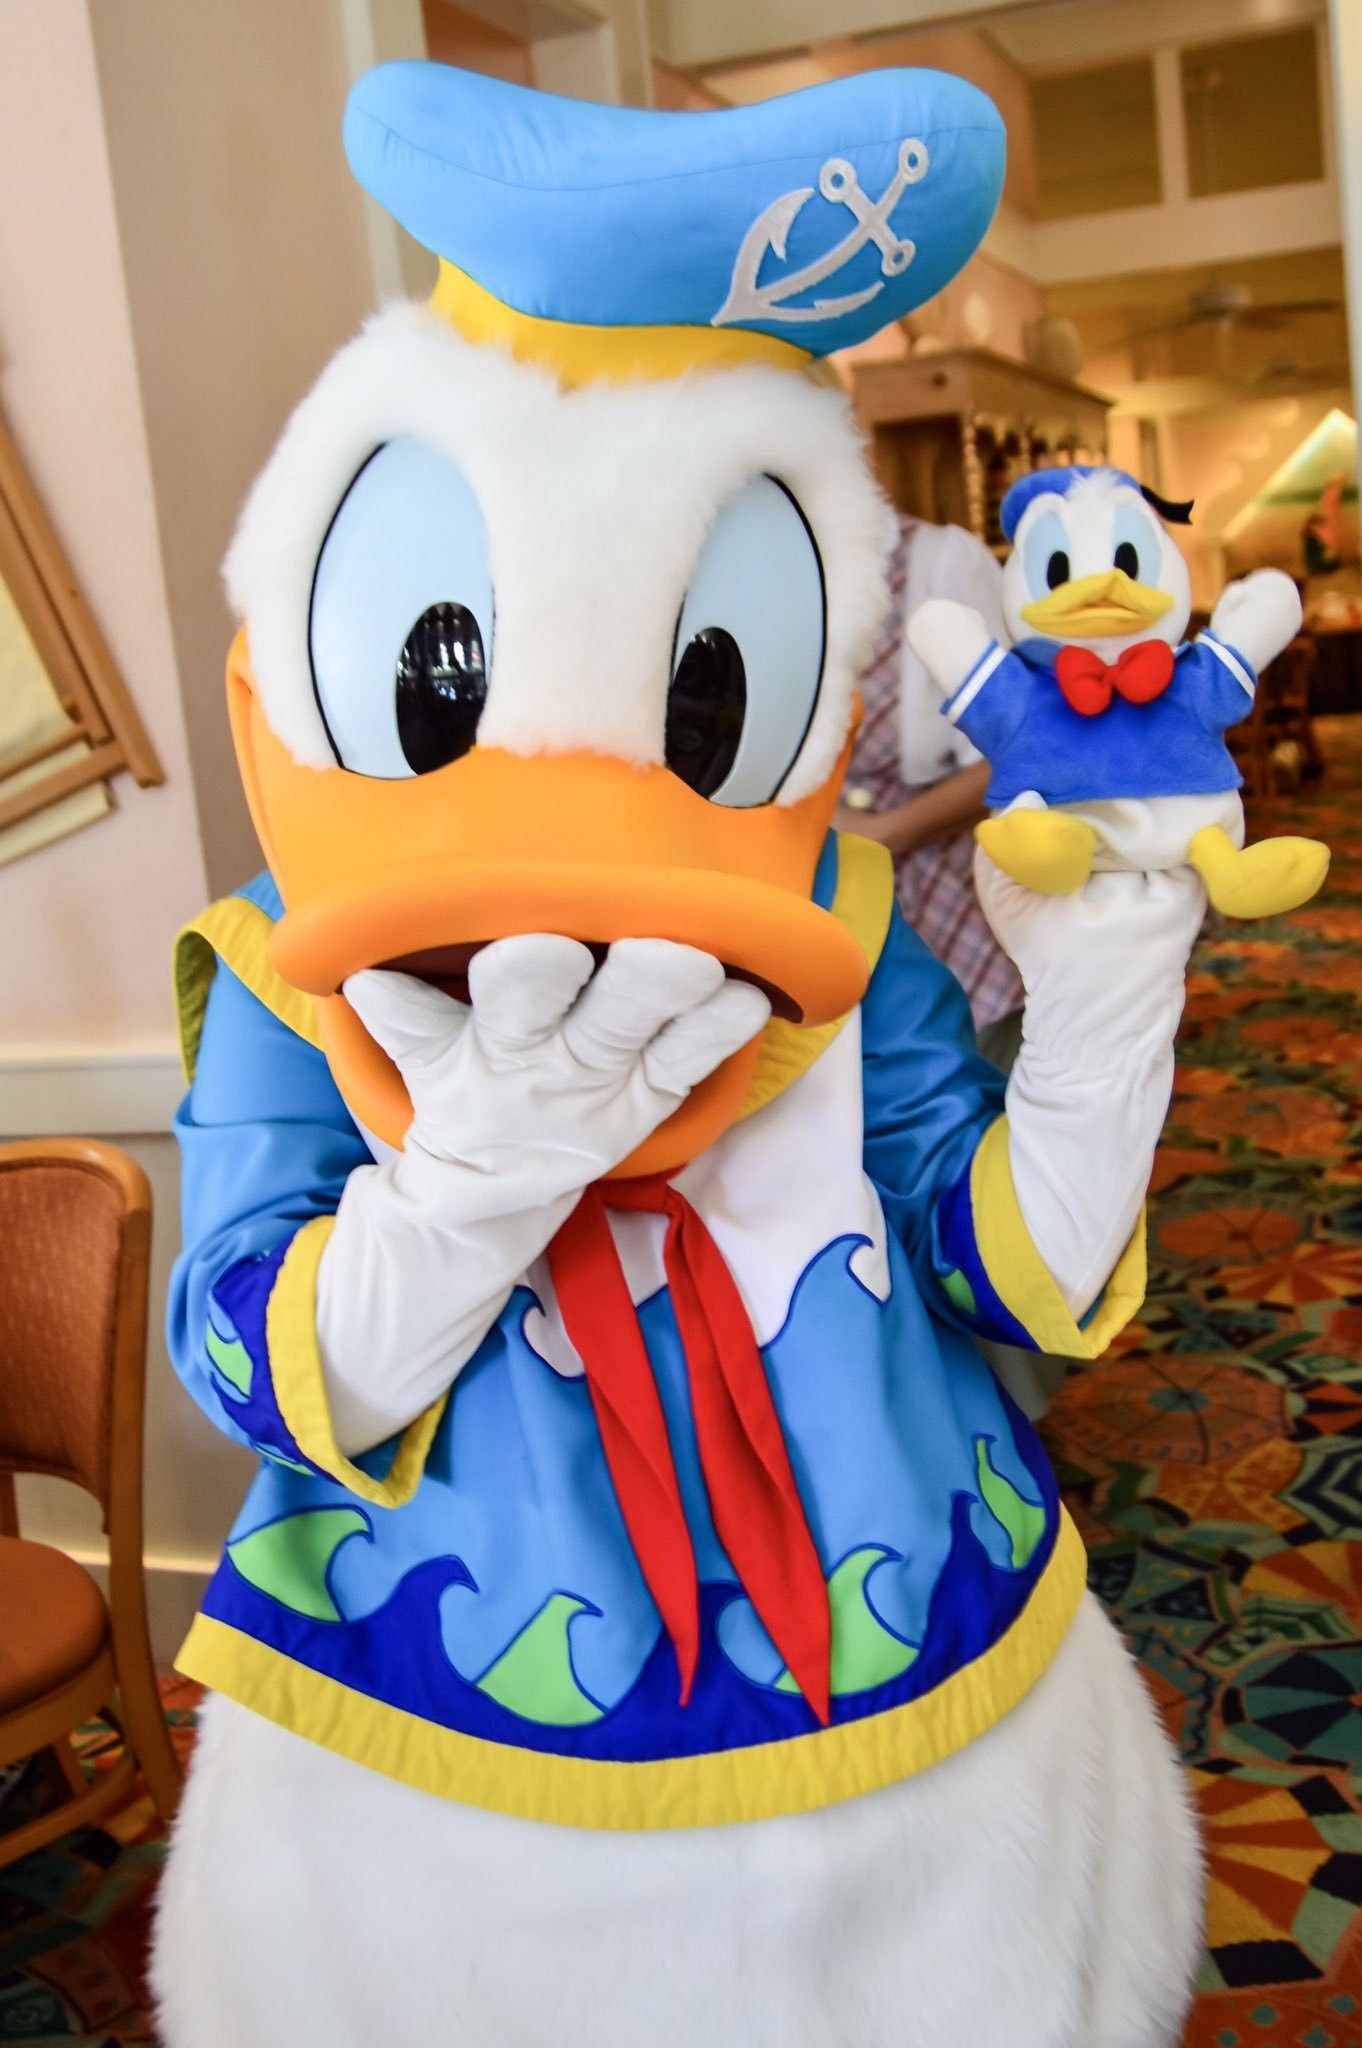 Donald Duck Holding A Toy Donald Duck ドナルド 壁紙 ミッキー